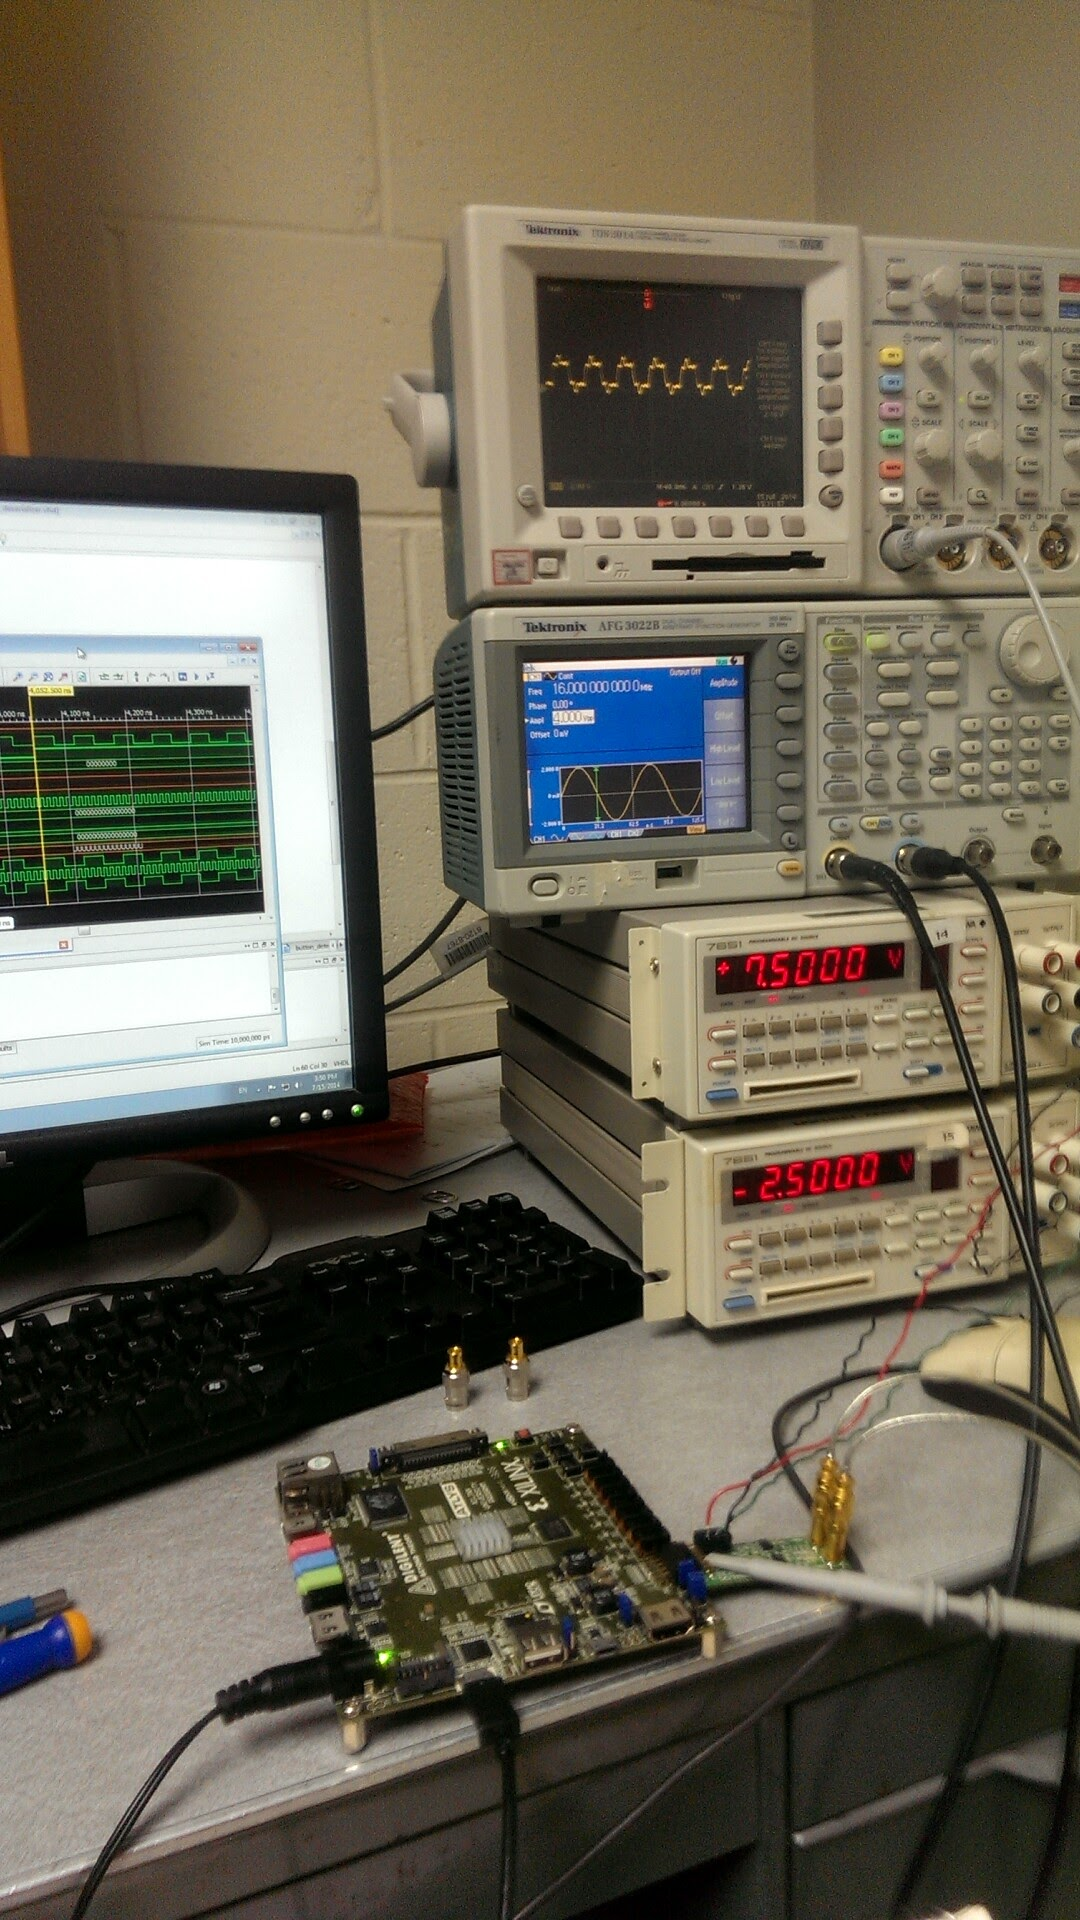 FPGA in the foreground, with a signal generator, oscilliscope, and voltage source in the background. Computer screen in the background displaying VHDL synthesis results.